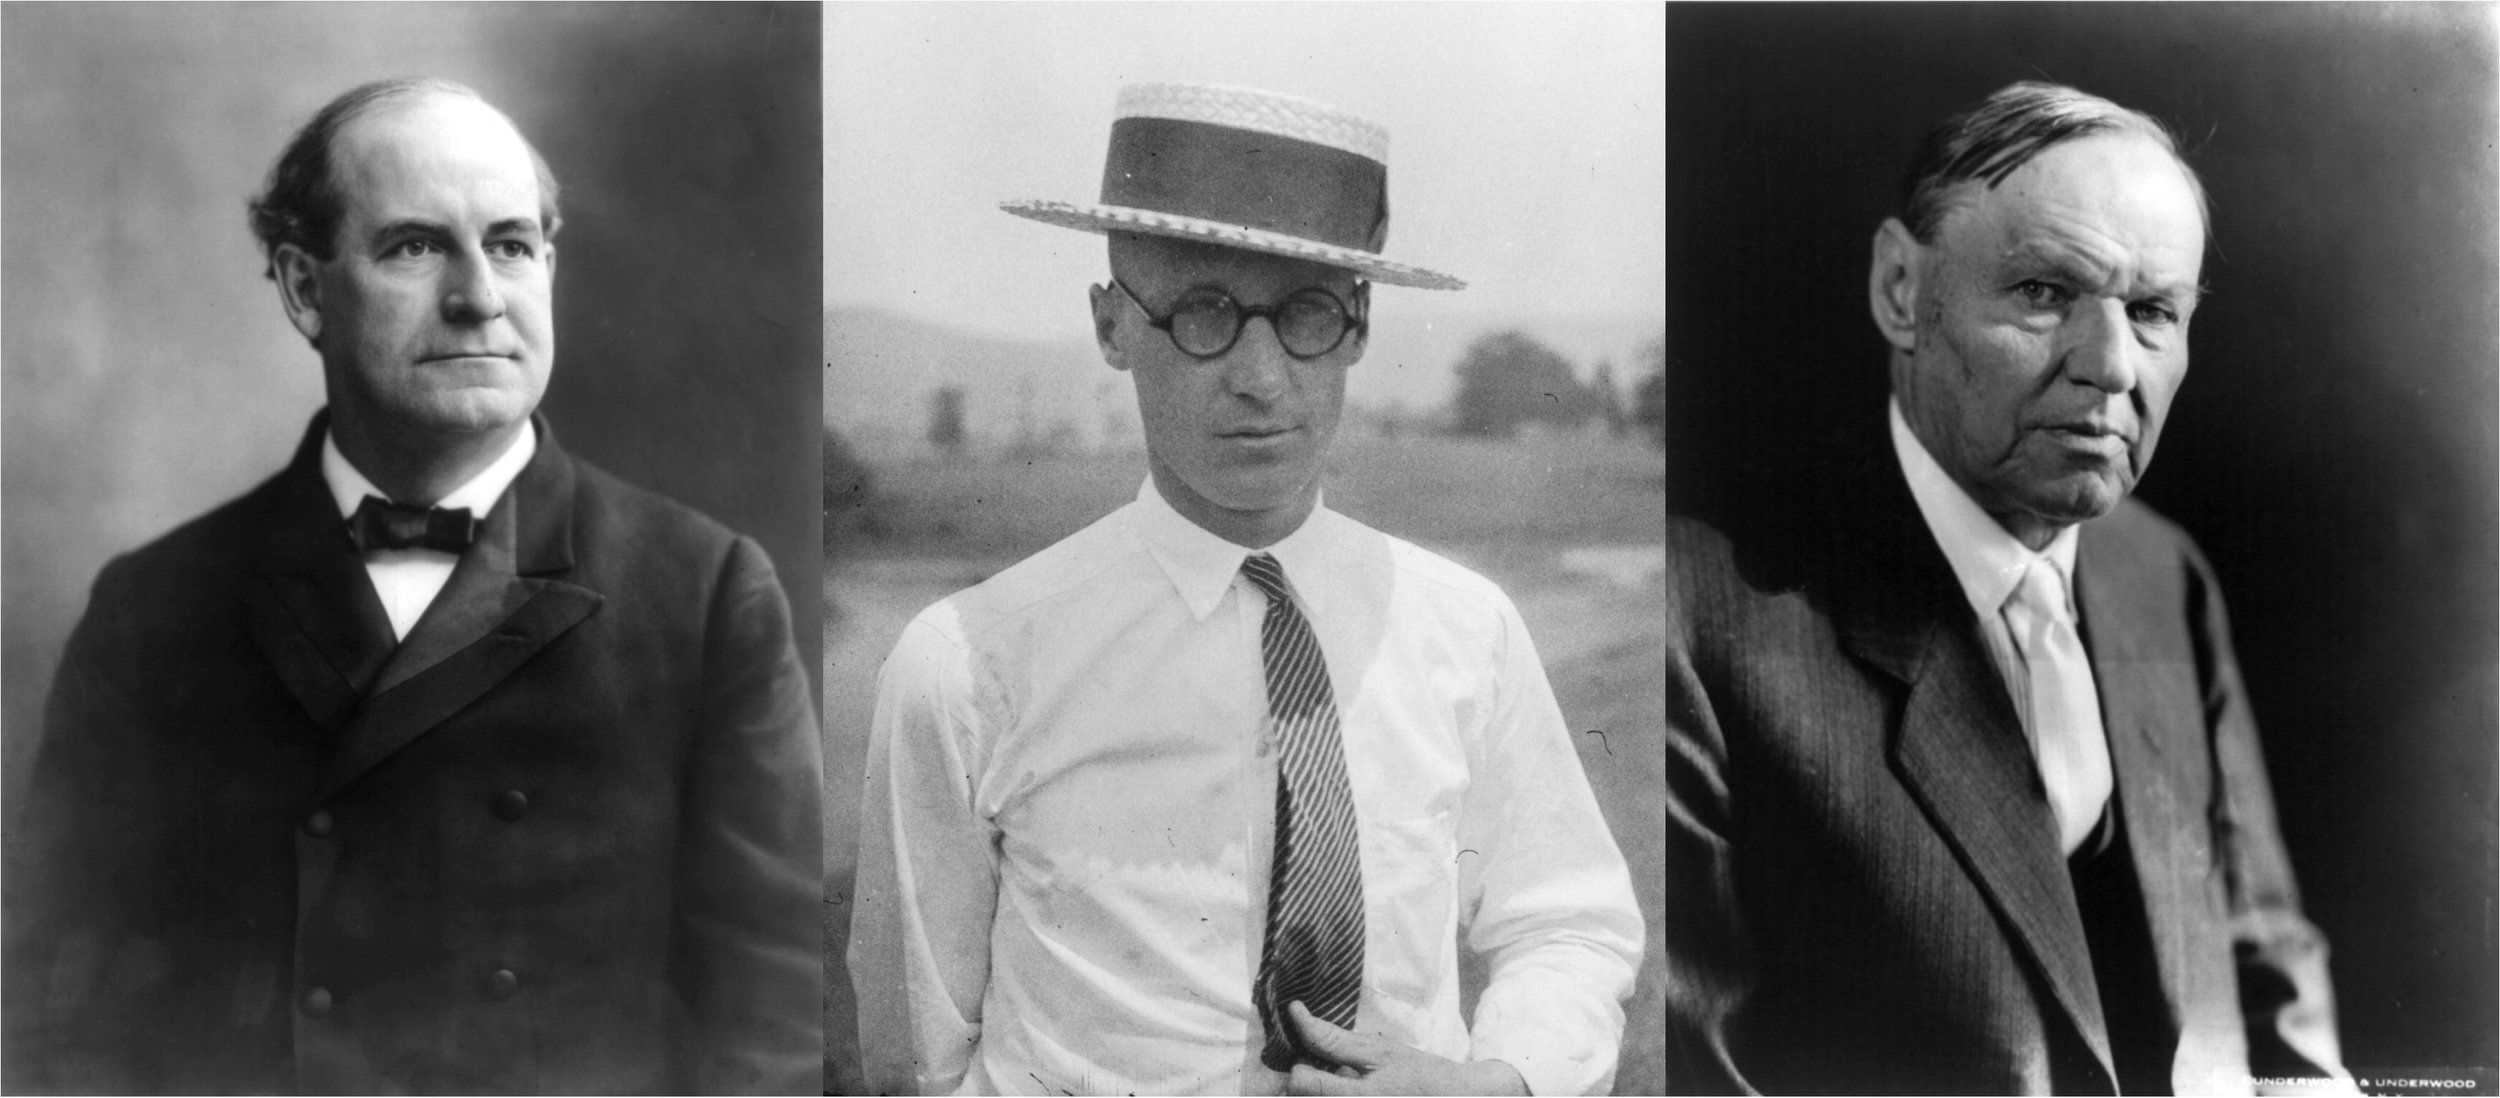 The three main parties of the Scopes Trial: William Jennings Bryan (left), John T. Scopes (center), Clarence Darrow (right). Source: Wikimedia Commons